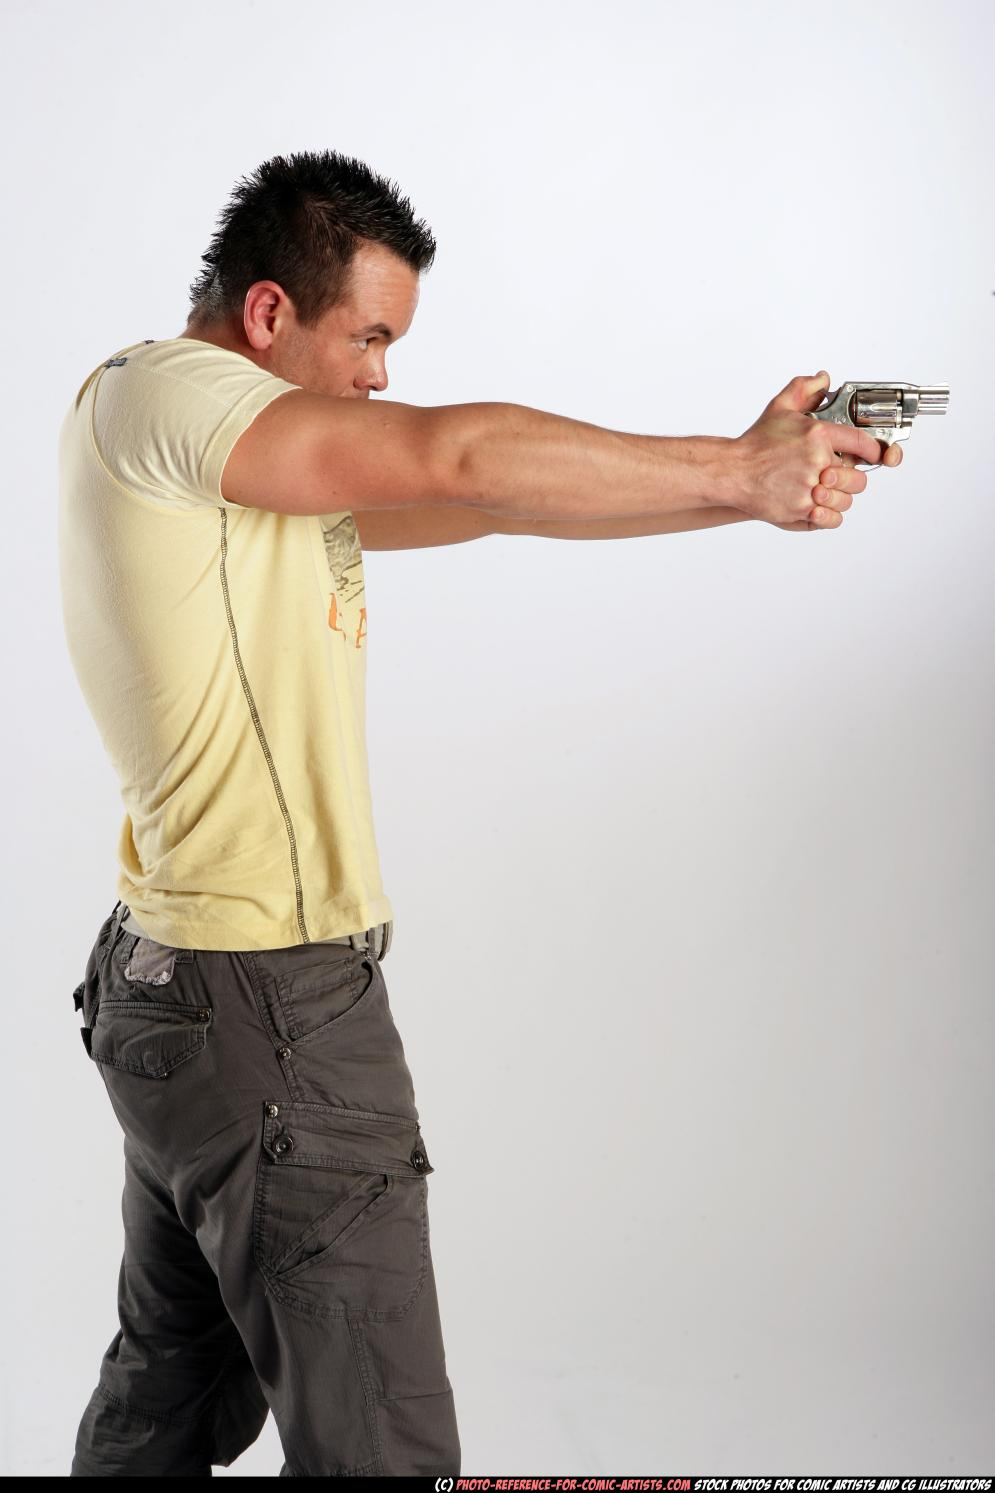 Image from Johnny Shooting Revolver - 9036-2009_12_johnny_aiming_revolver_02.jpg